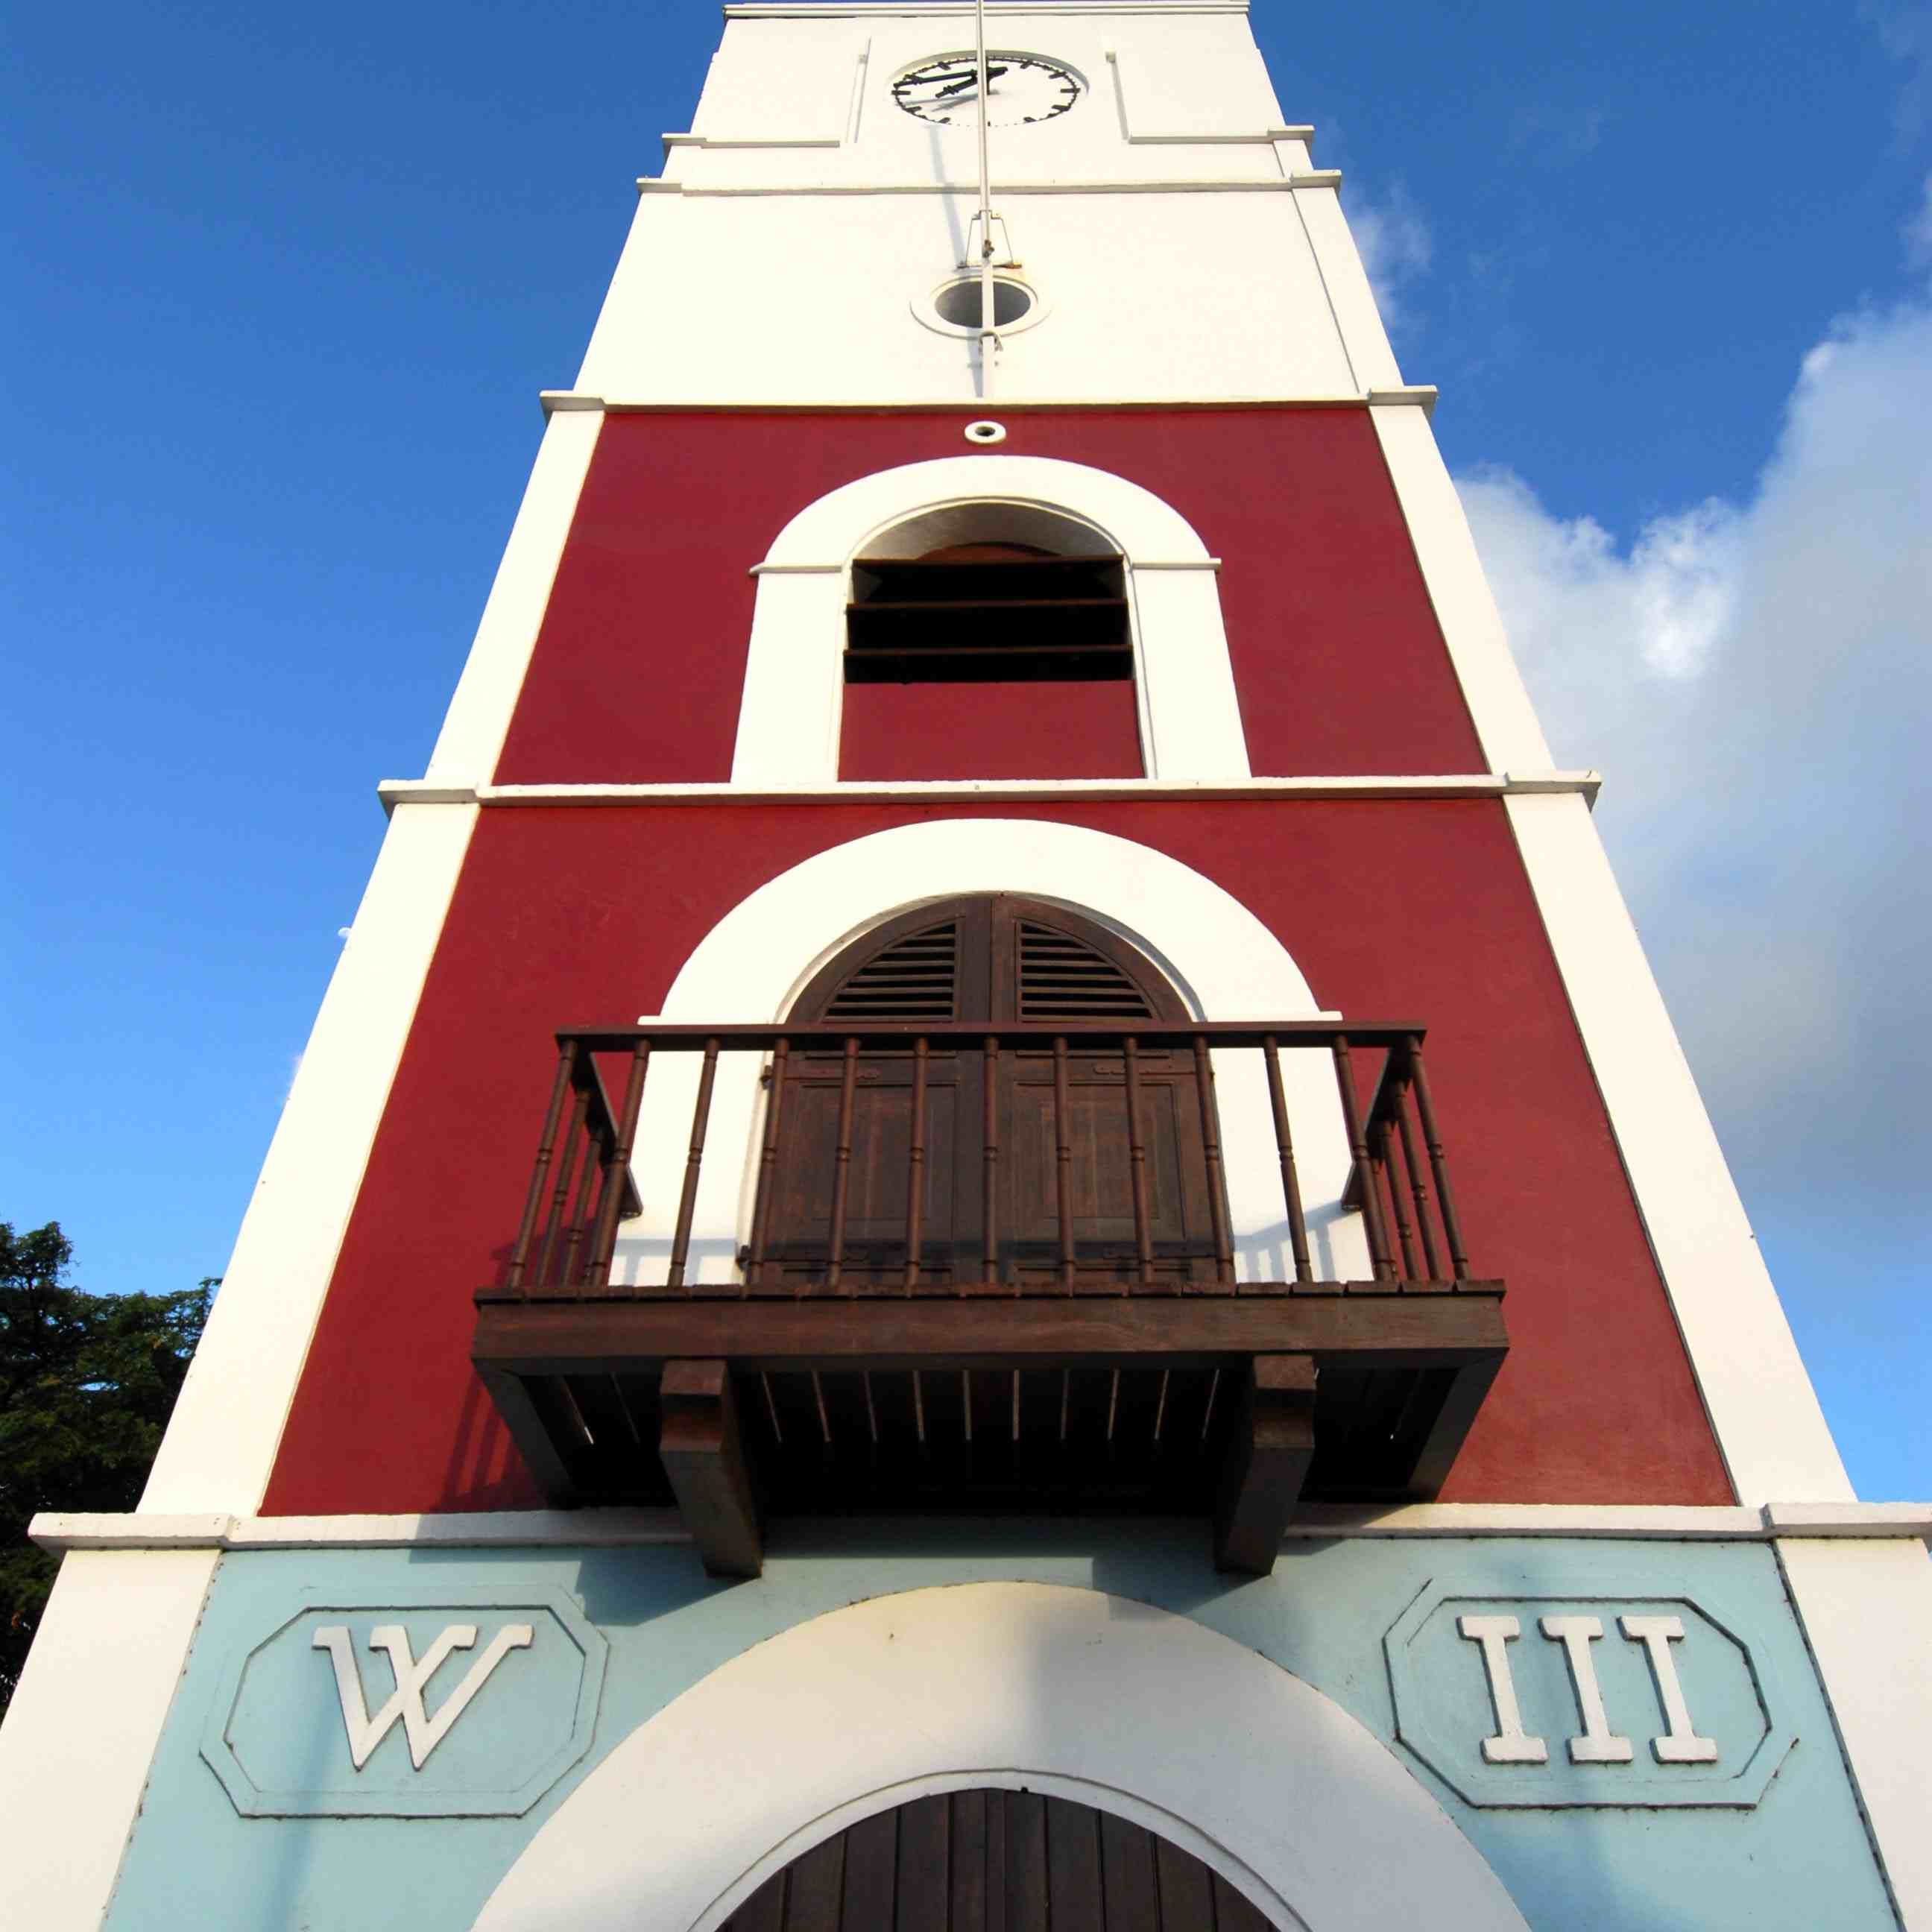 Tower at the Fort Zoutman Historical Museum in Oranjestad, Aruba